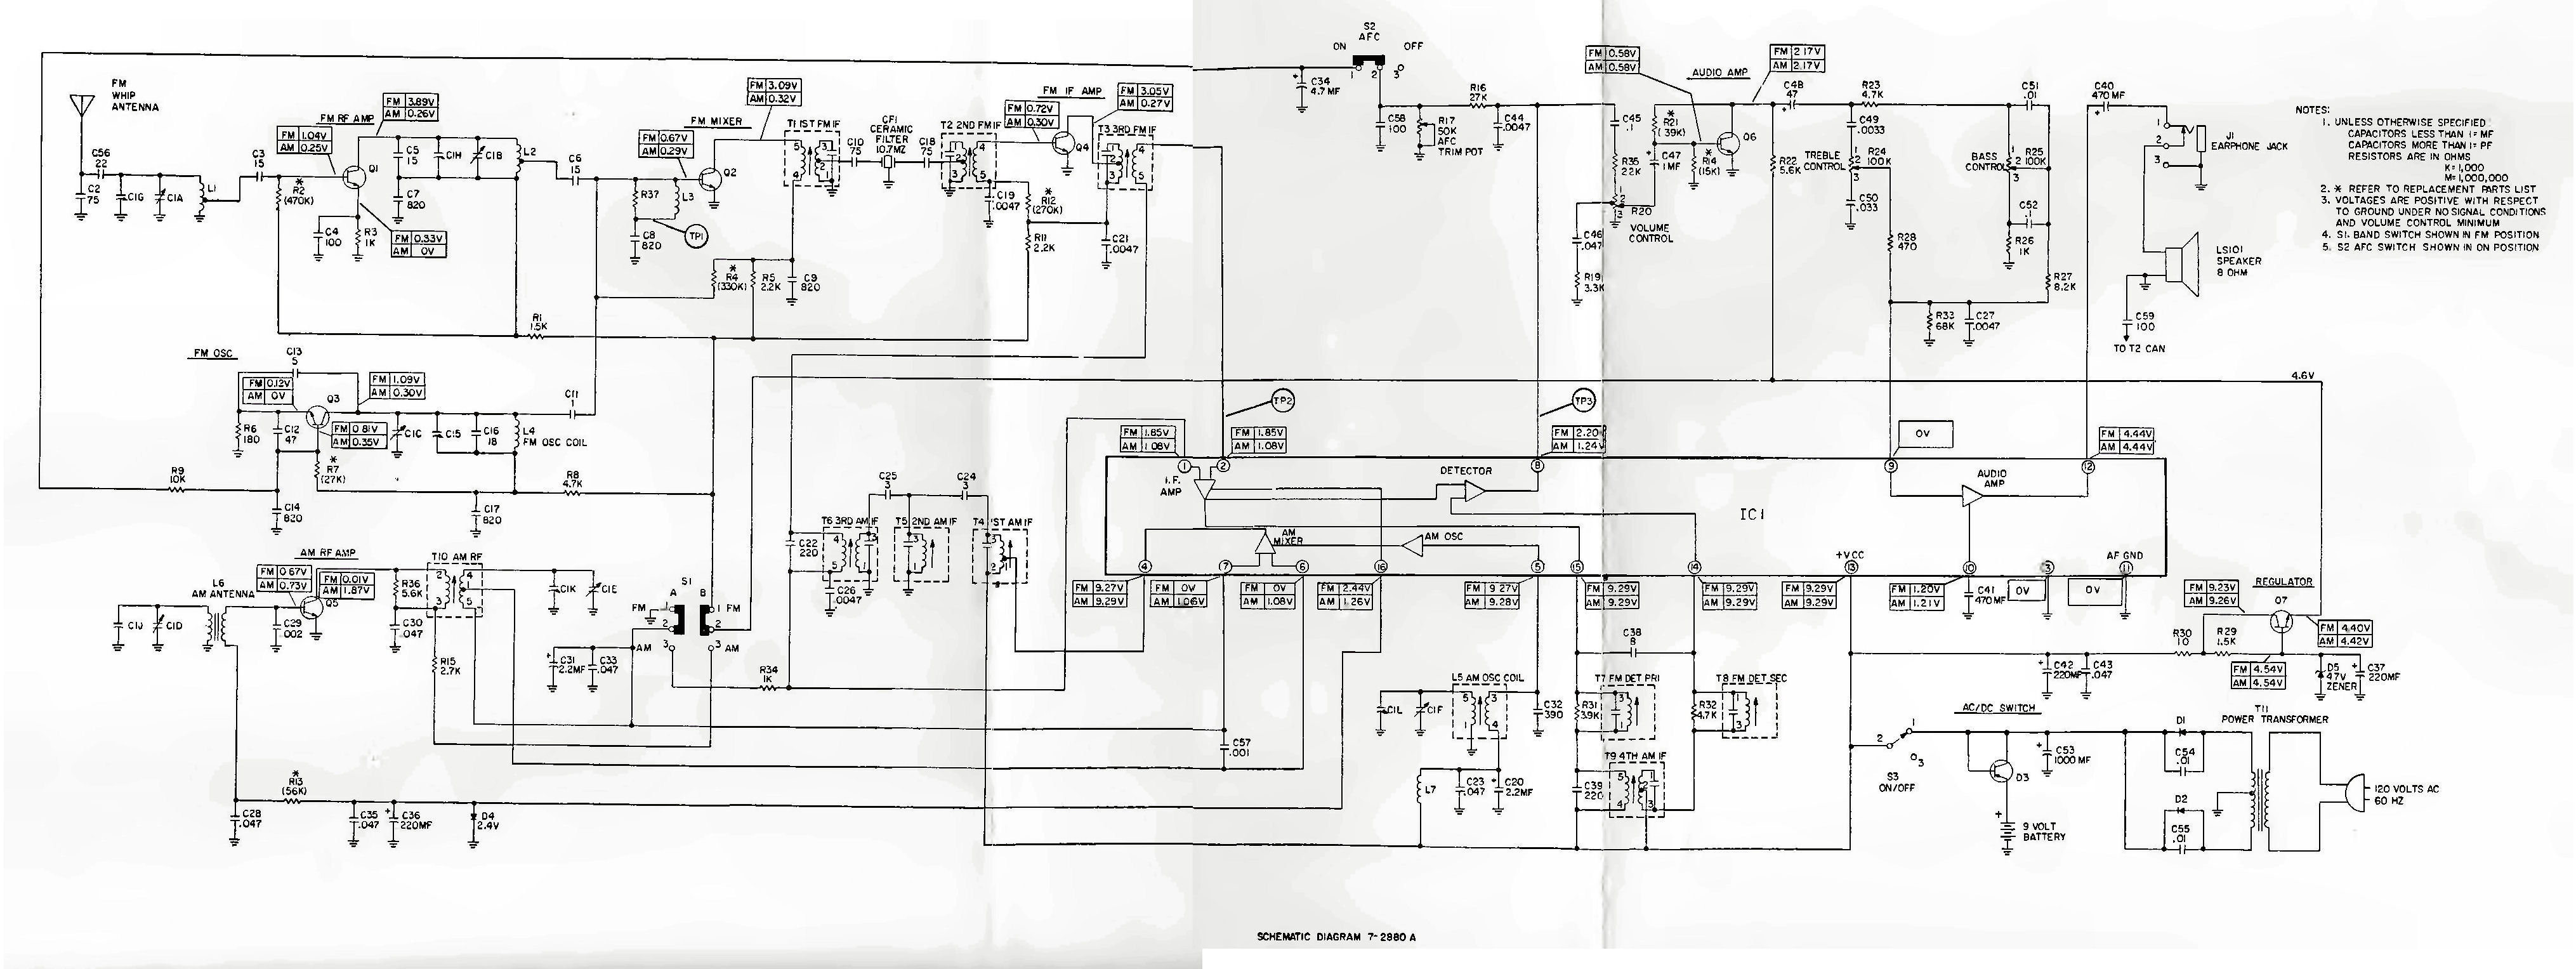 Ge Rr4 Wiring Diagram | Wiring Liry Ge Rr Relay Wiring Diagram on